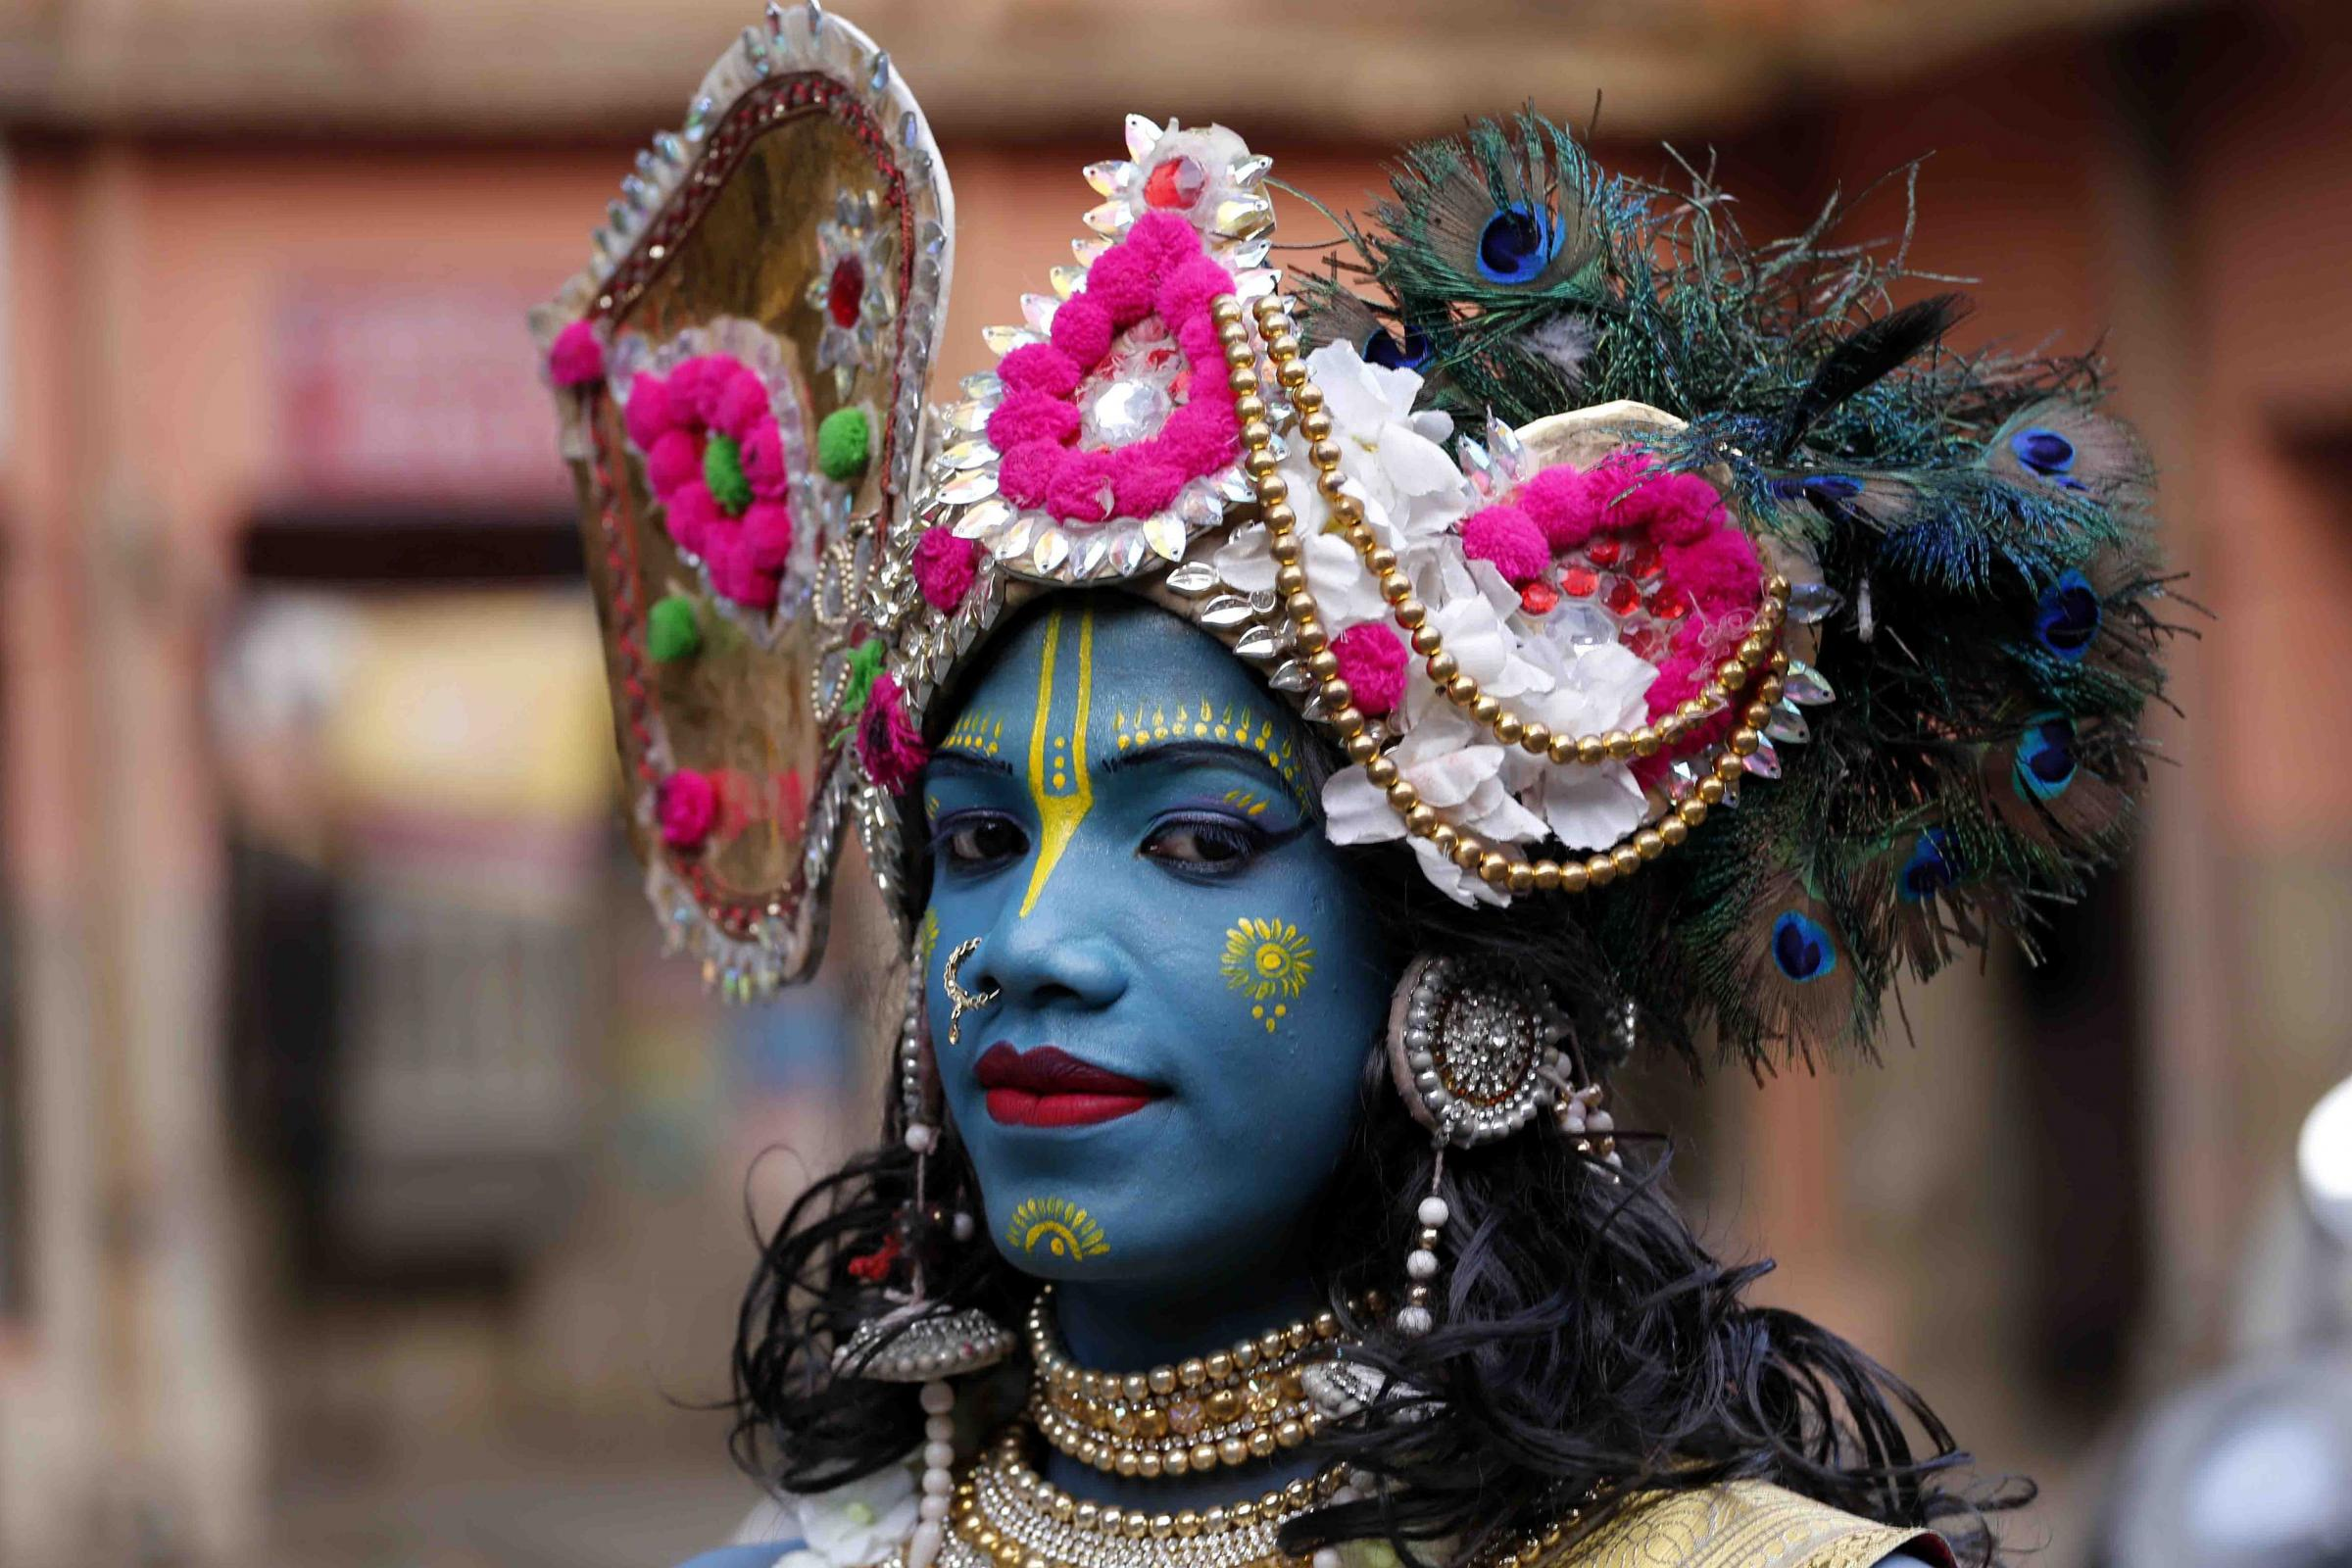 An Indian devotee dressed as the Hindu deity Lord Krishna poses during Shyam Baba festival in Ajmer in the Indian state of Rajasthan on April 26, 2018. (Photo by HIMANSHU SHARMA / AFP)